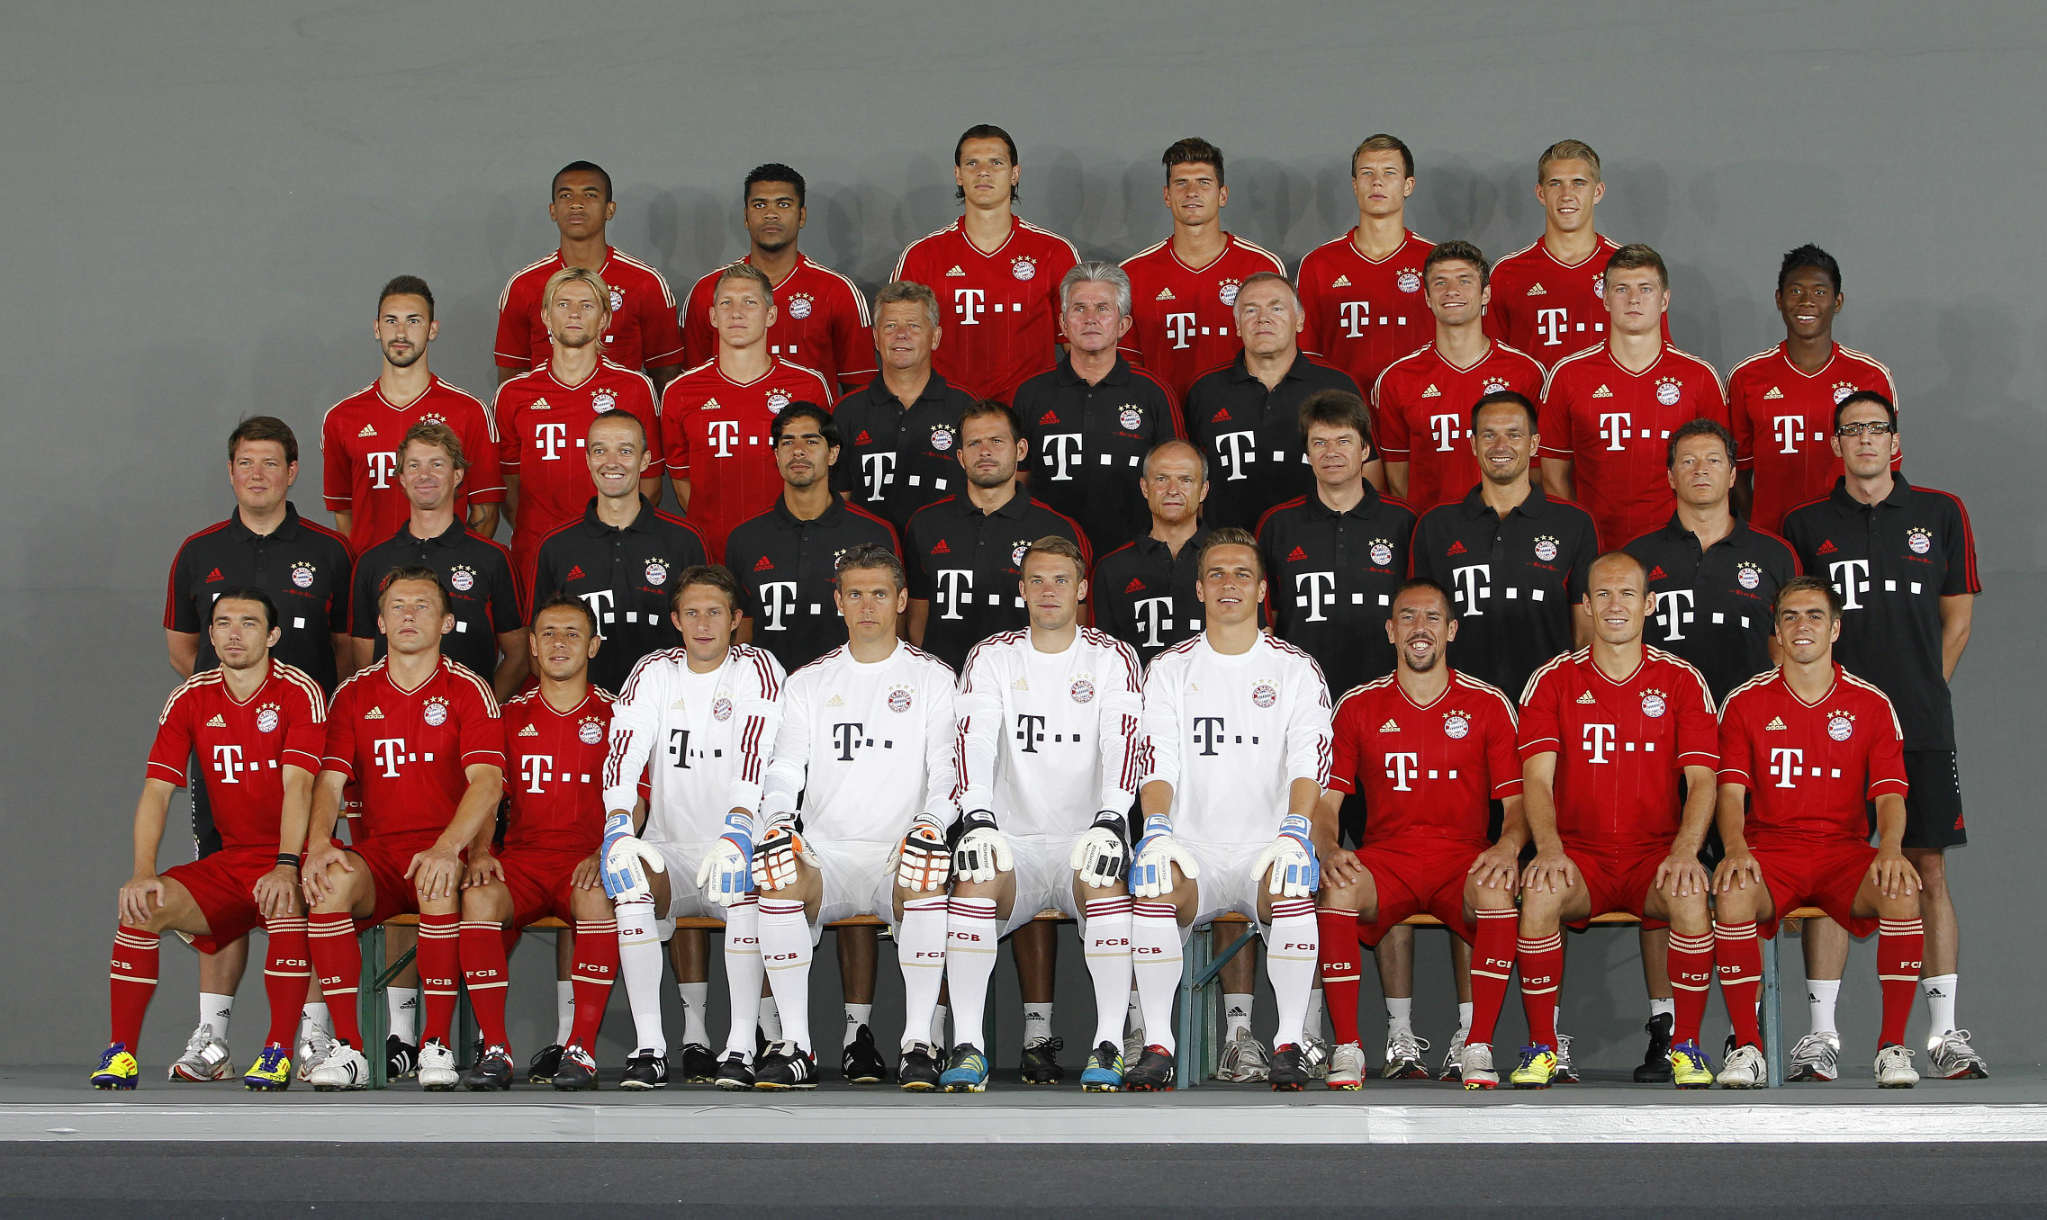 Bayern Munchen Wallpapers